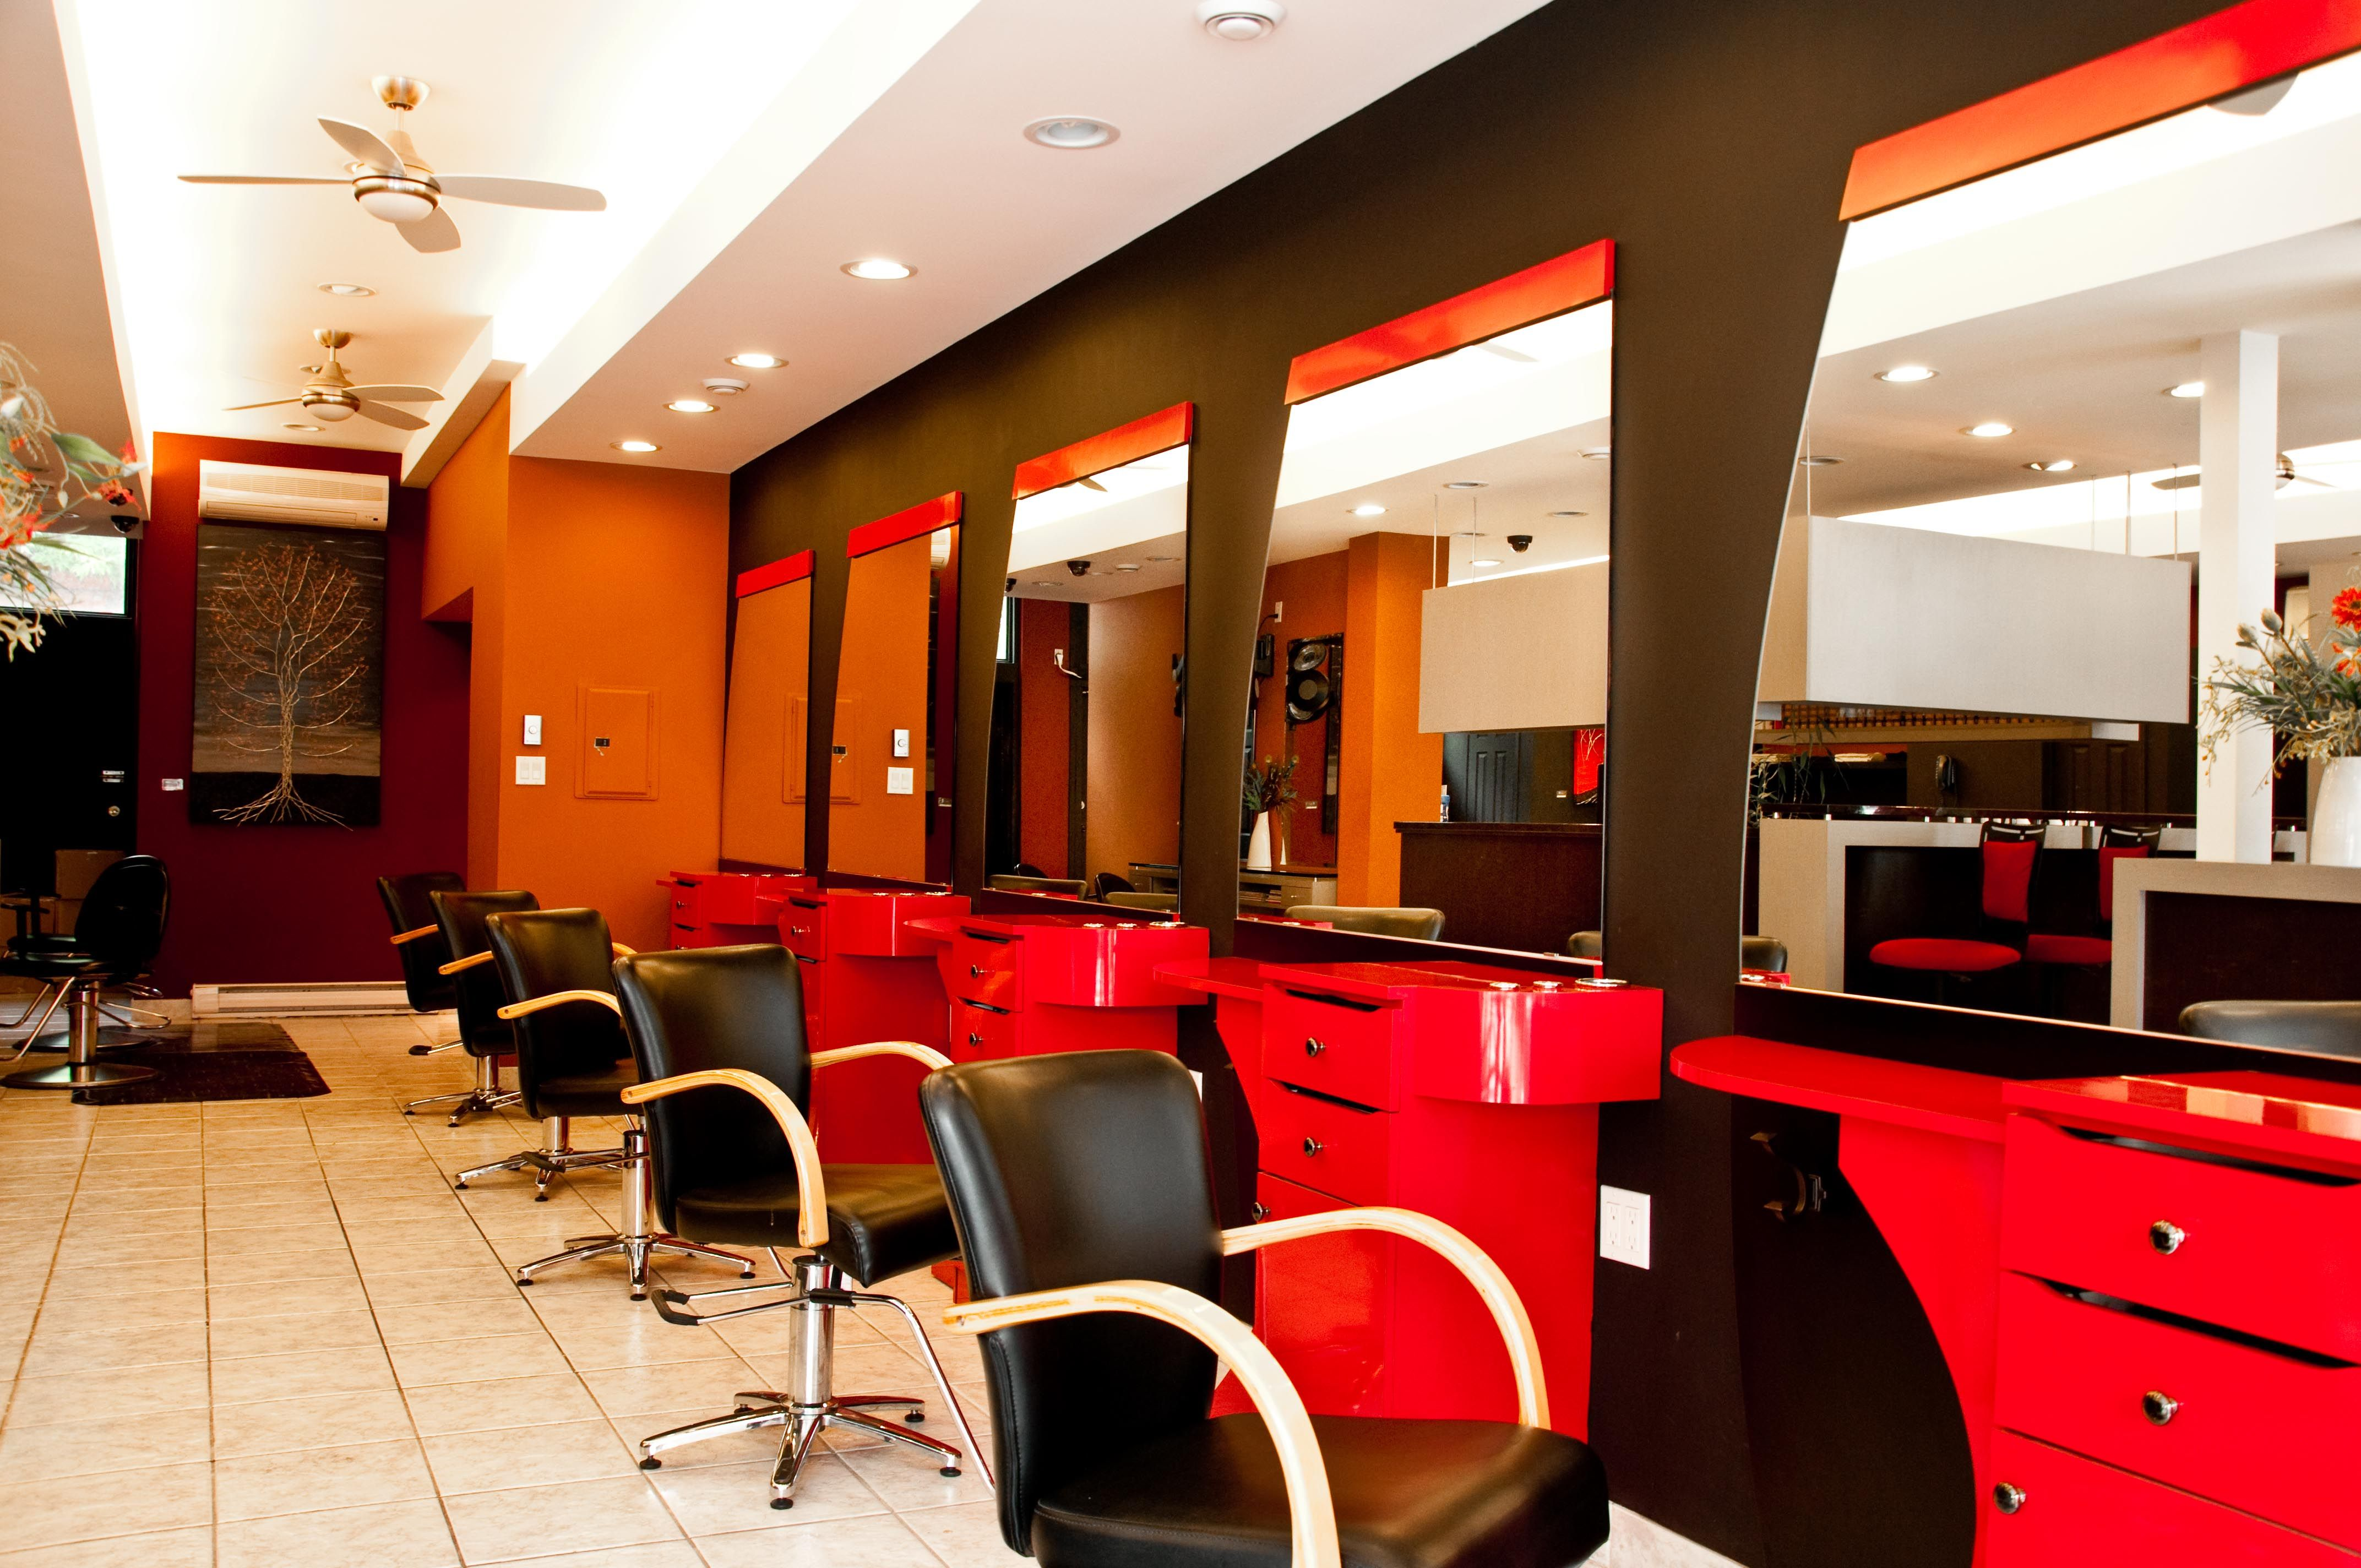 White hair salon chairs - I Wanna Have A Salon That Looks Just Like This When I Finally Pursue My Dreams